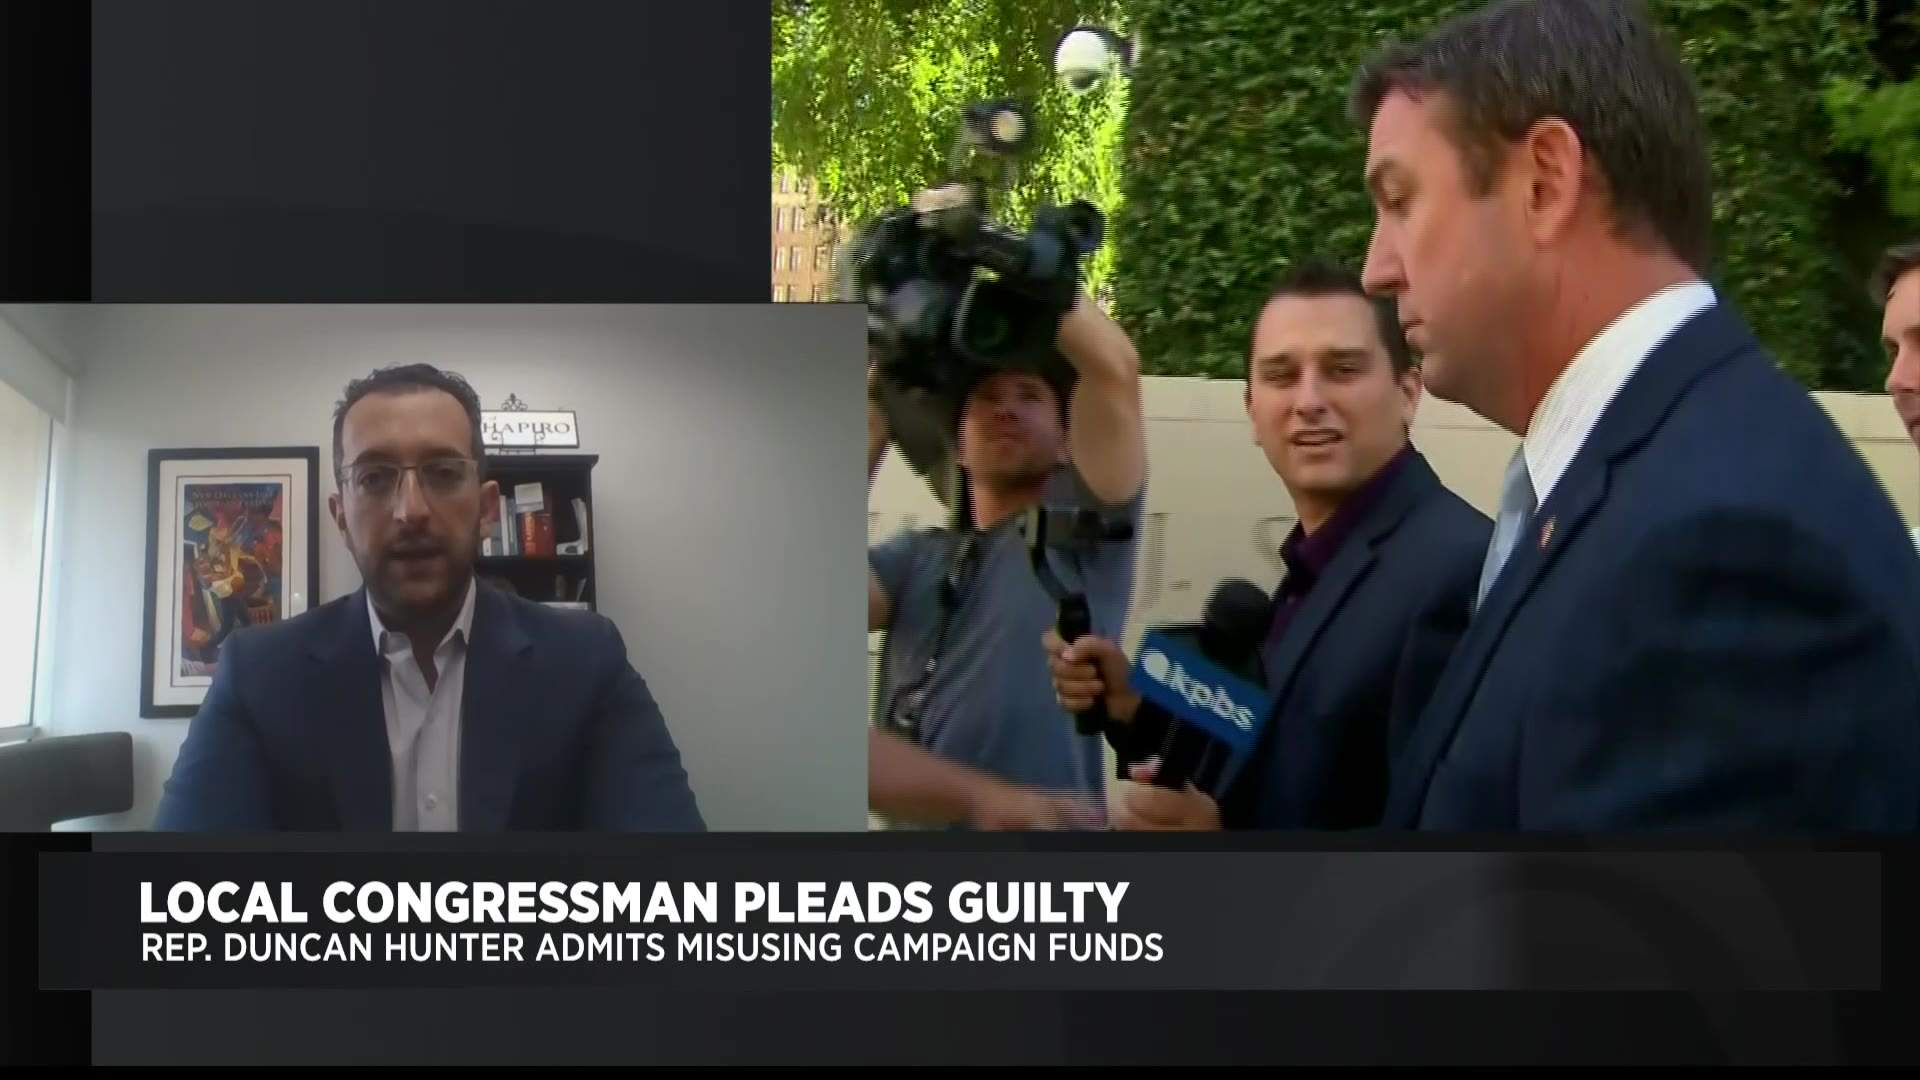 From 'Woe Is Me' To Guilty Plea: Why San Diego Rep. Duncan Hunter Changed His Tune